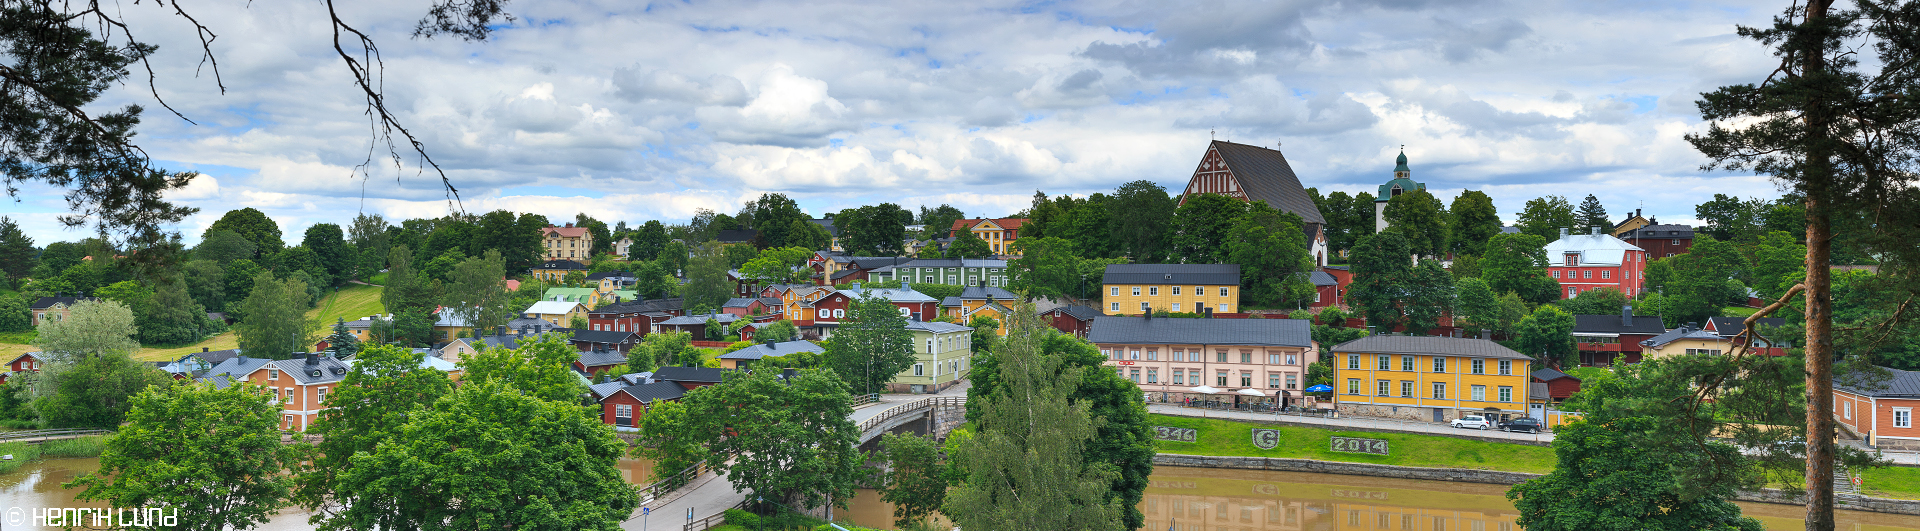 A panoramic over old town of Porvoo in southern Finland - one of Finlands cultural landscapes. Porvoo, Finland, June 2014.